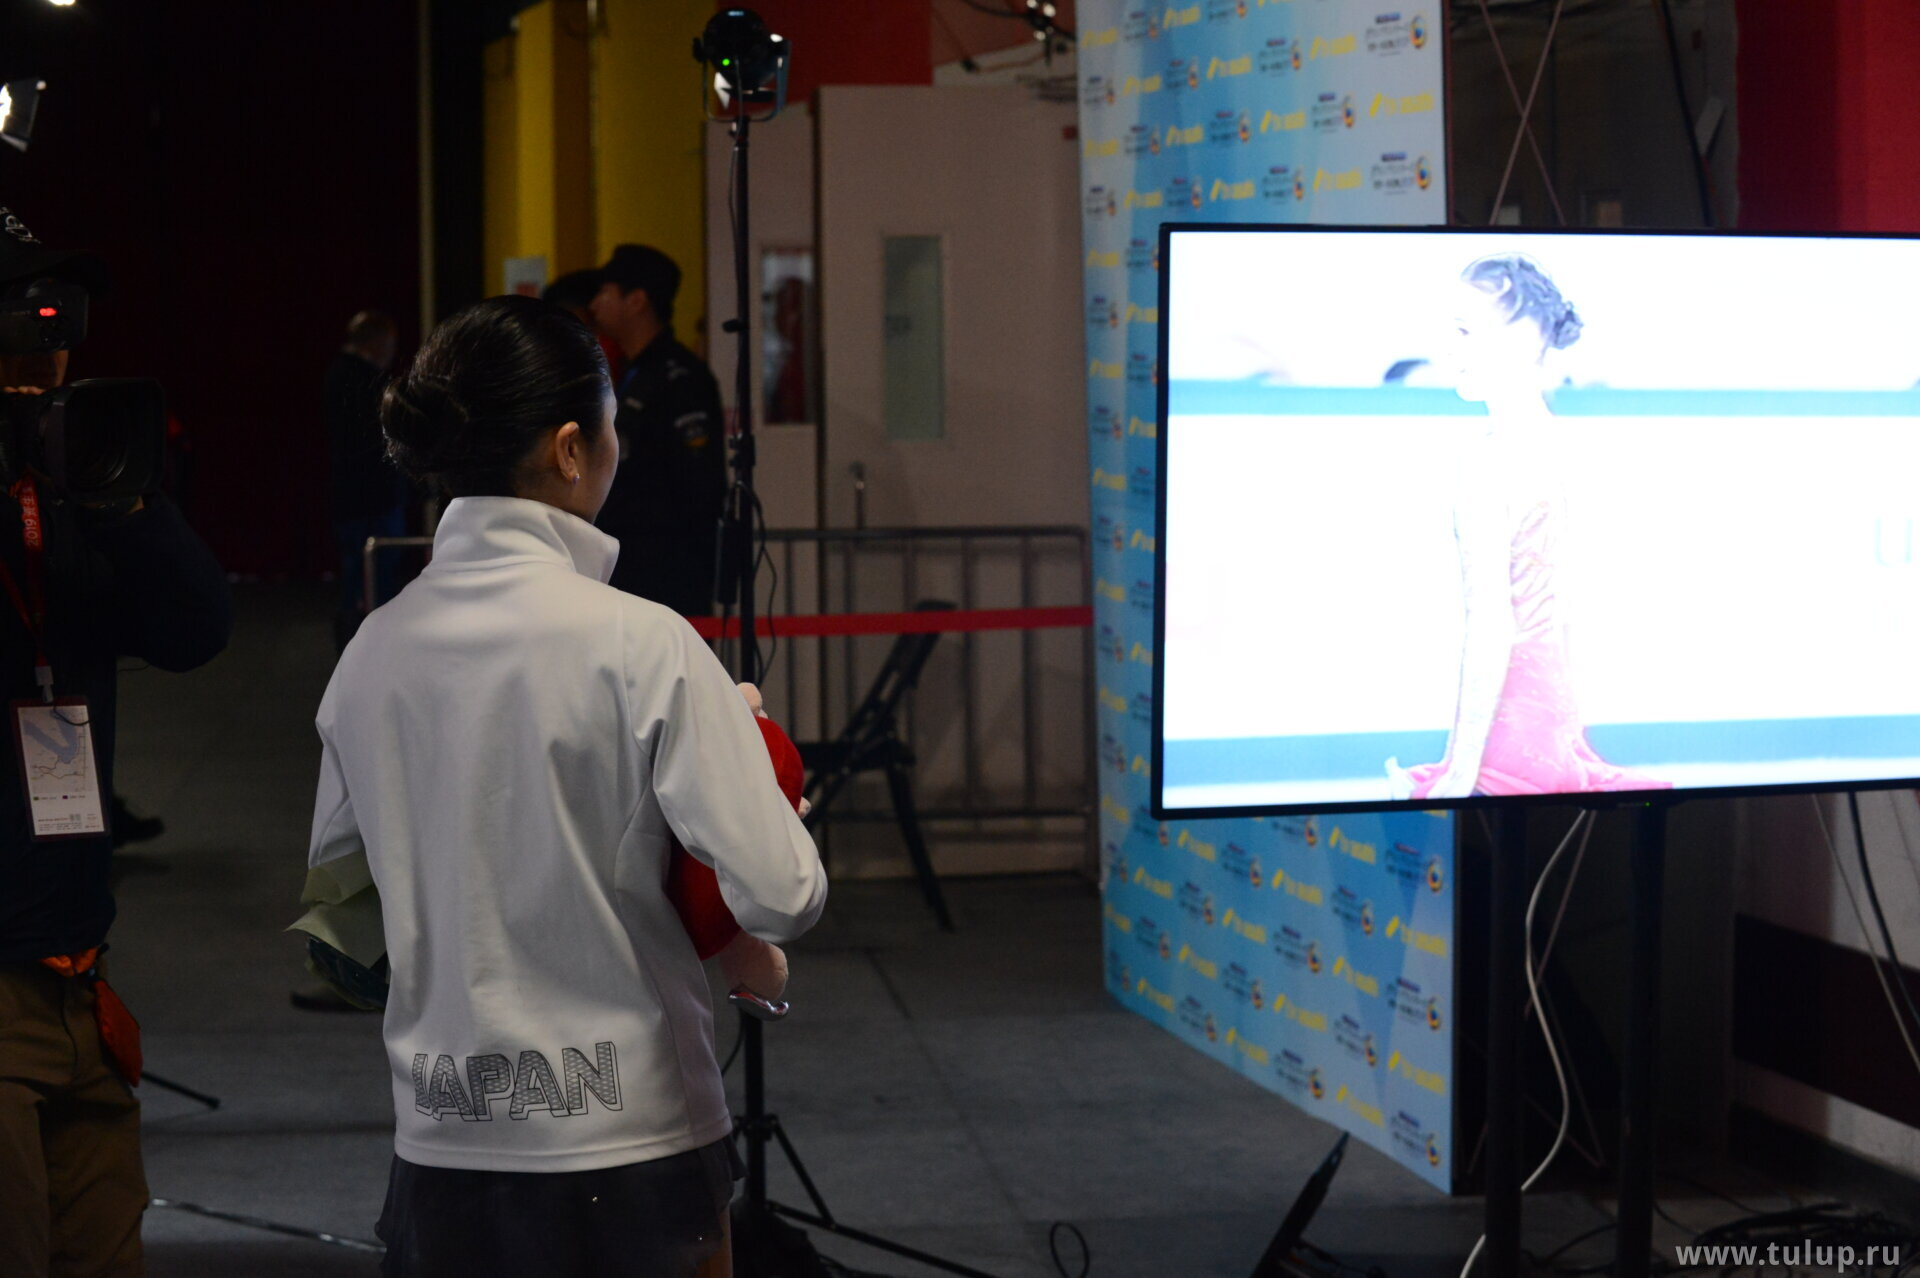 Satoko Miyahara watches Anna's performance on request of Japanese TV